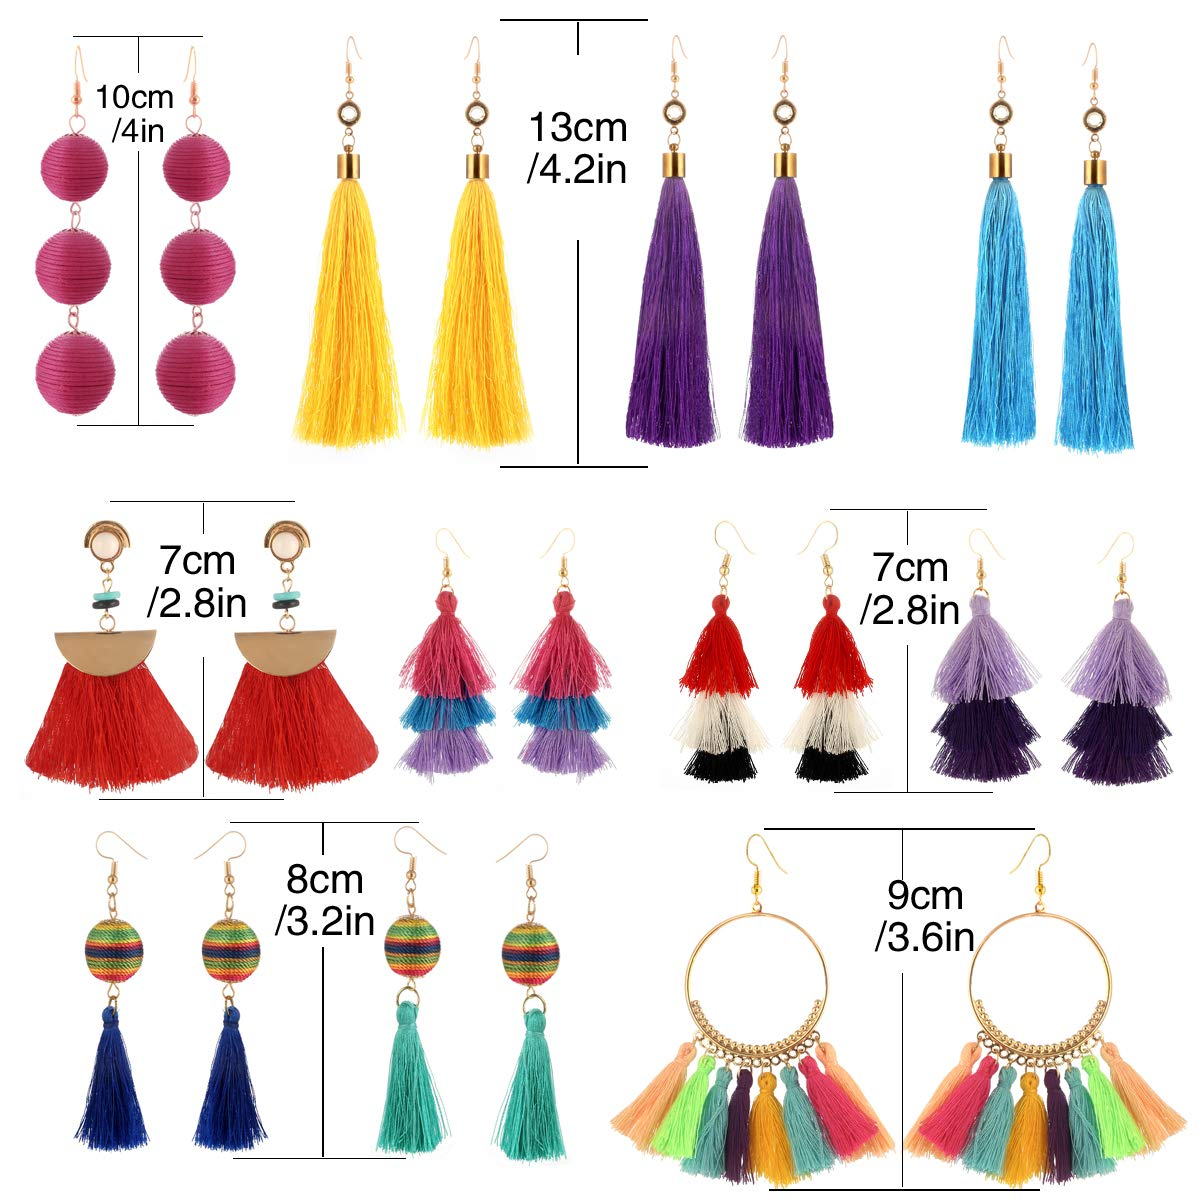 9-18 Pairs Colorful Long Fringe Earrings for Women-Lightweight Big Earrings for Women-Statement Earrings for Women and Girls